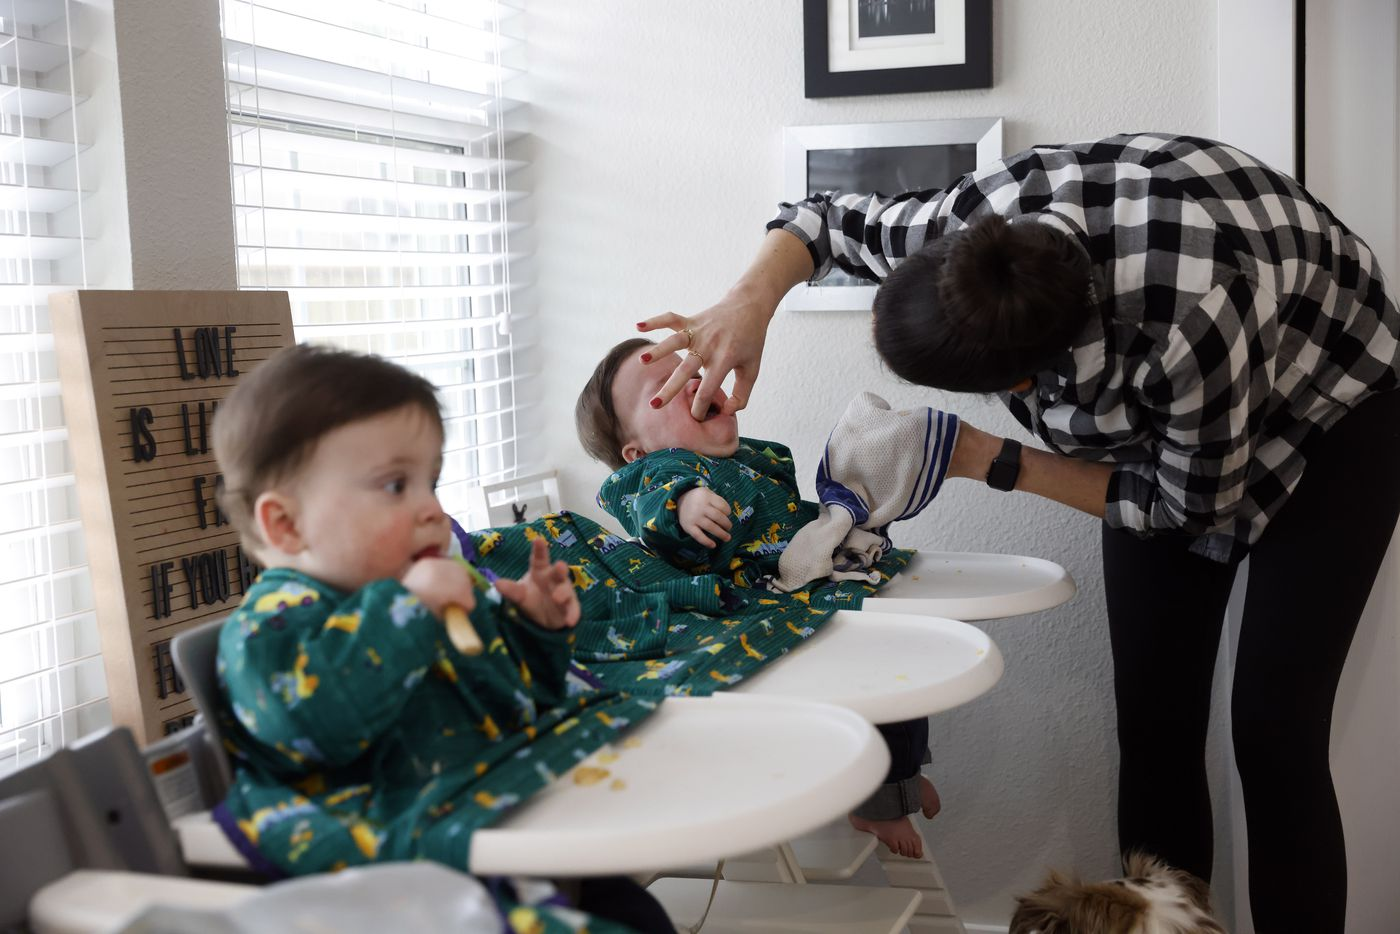 Jenny Marr checks for food in the mouth of Hudson Marr as Hardy works on eating a spoonful of banana pudding during lunch at their house on Tuesday, February 9, 2021 in Grapevine, Texas.